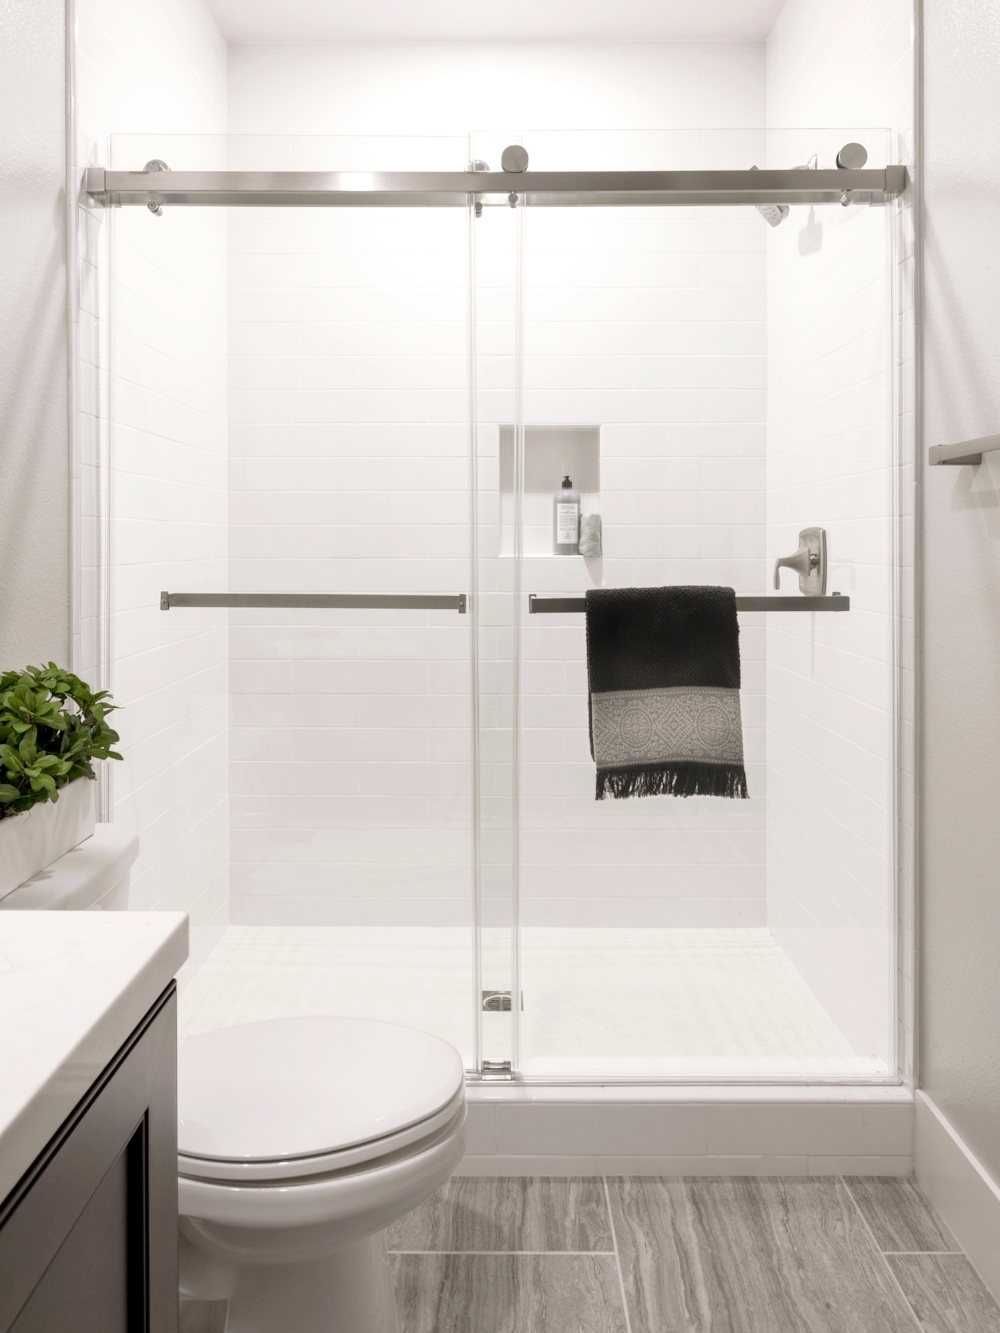 Top Roller Frameless Shower Doors -